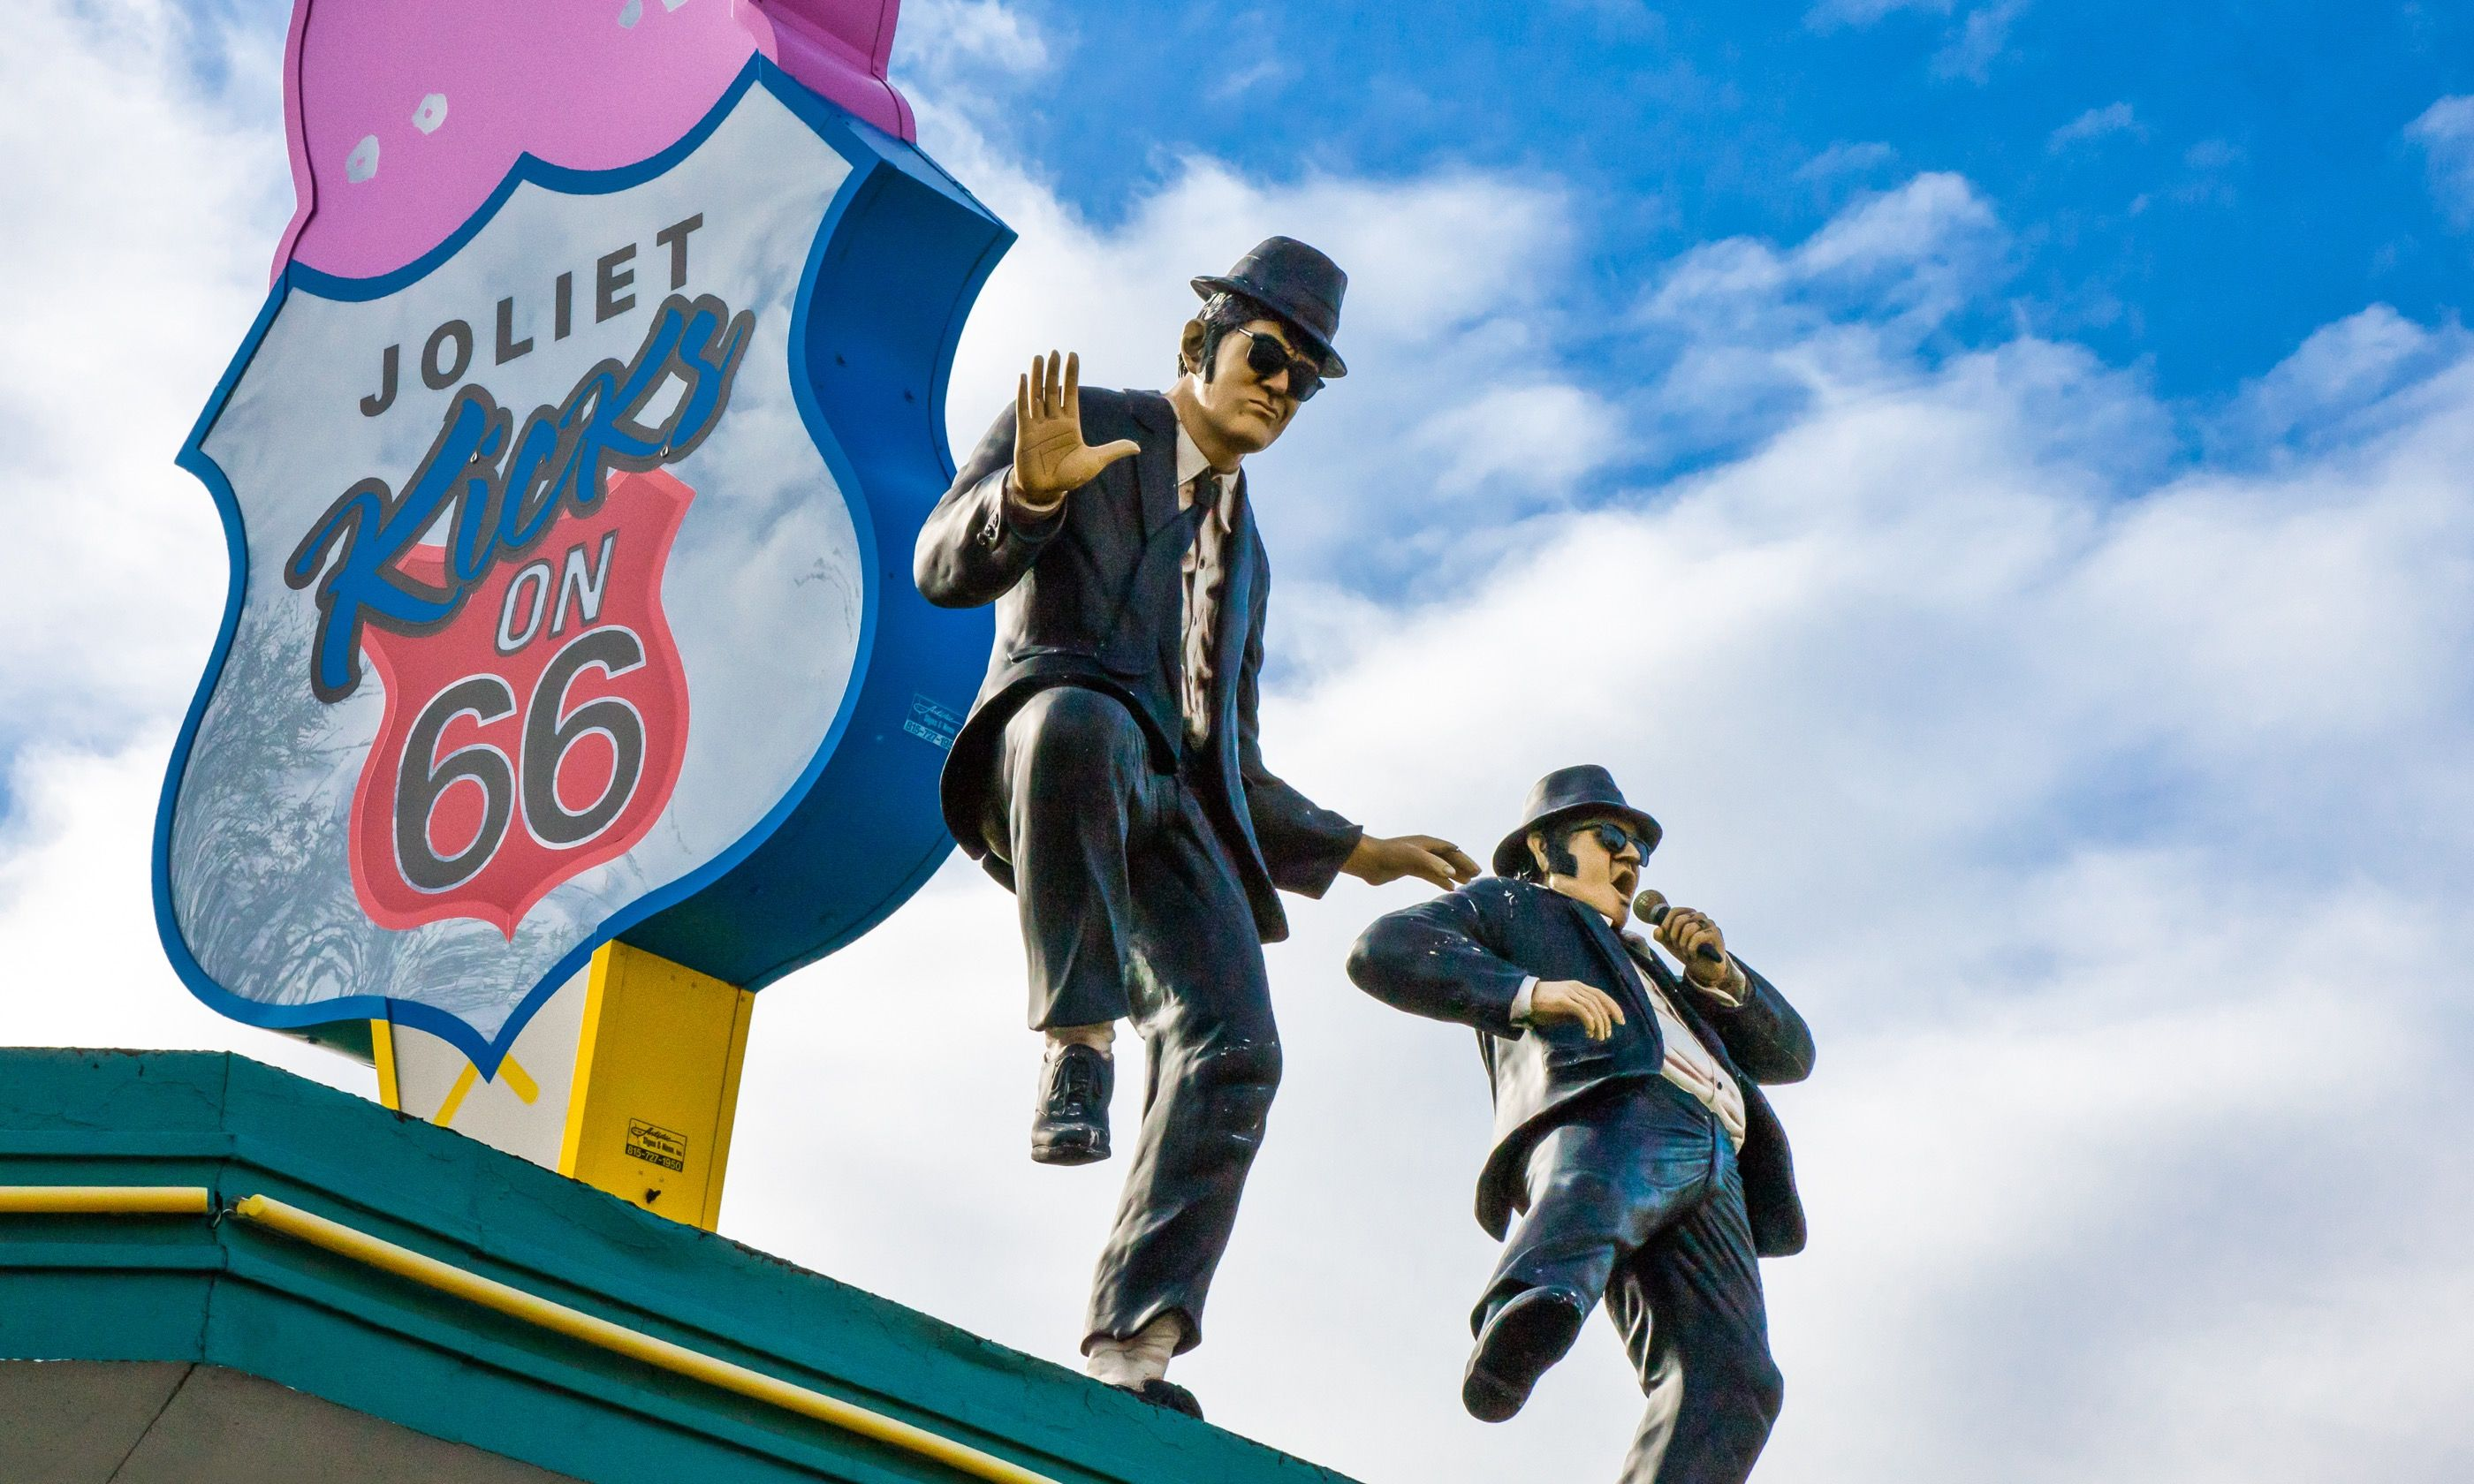 The Blues Brothers on Route 66 in Joliet (Shutterstock.com)